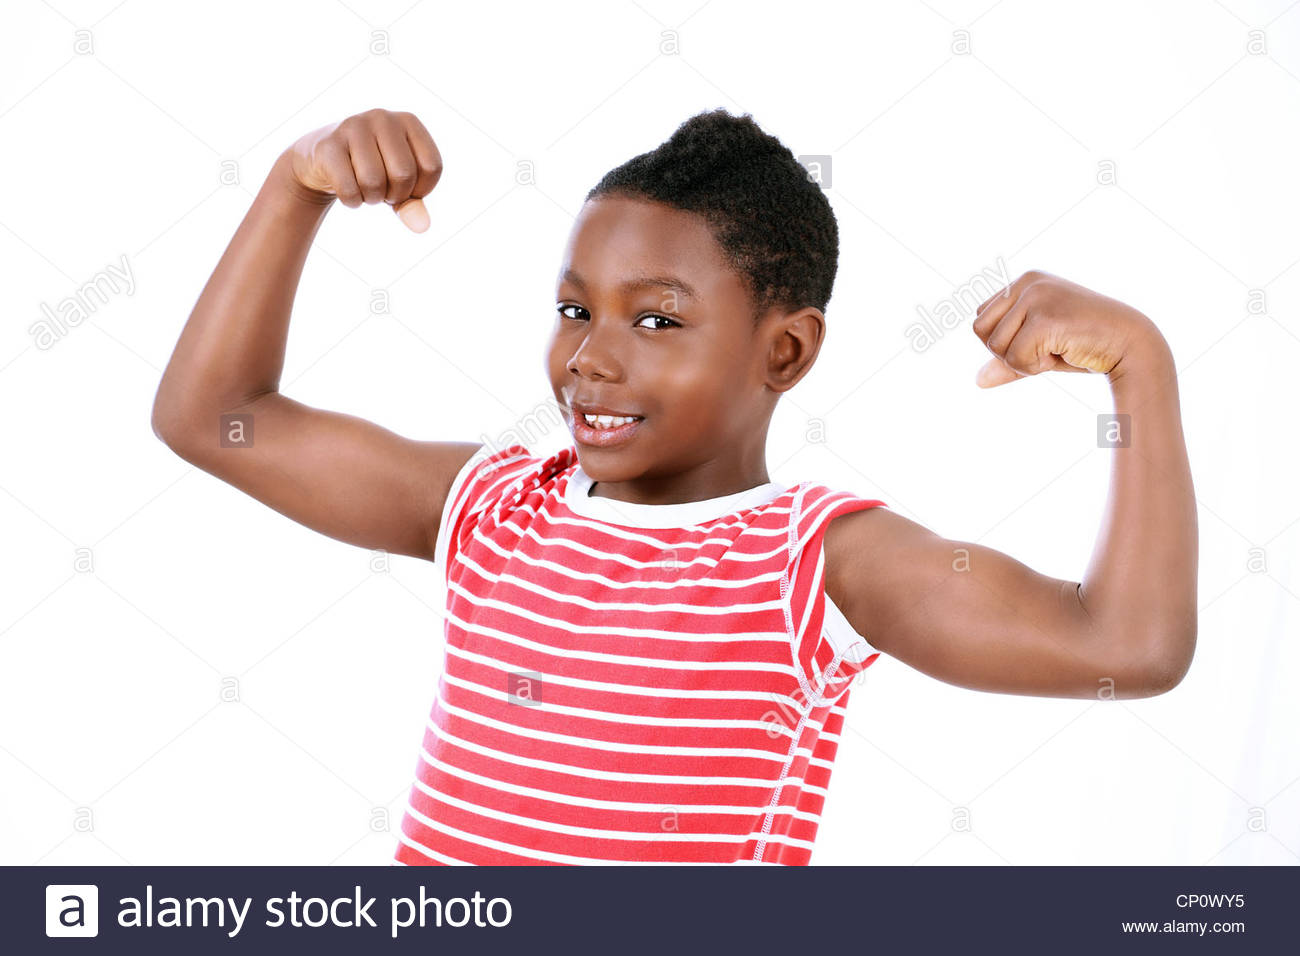 Little boy showing muscles - Stock Image